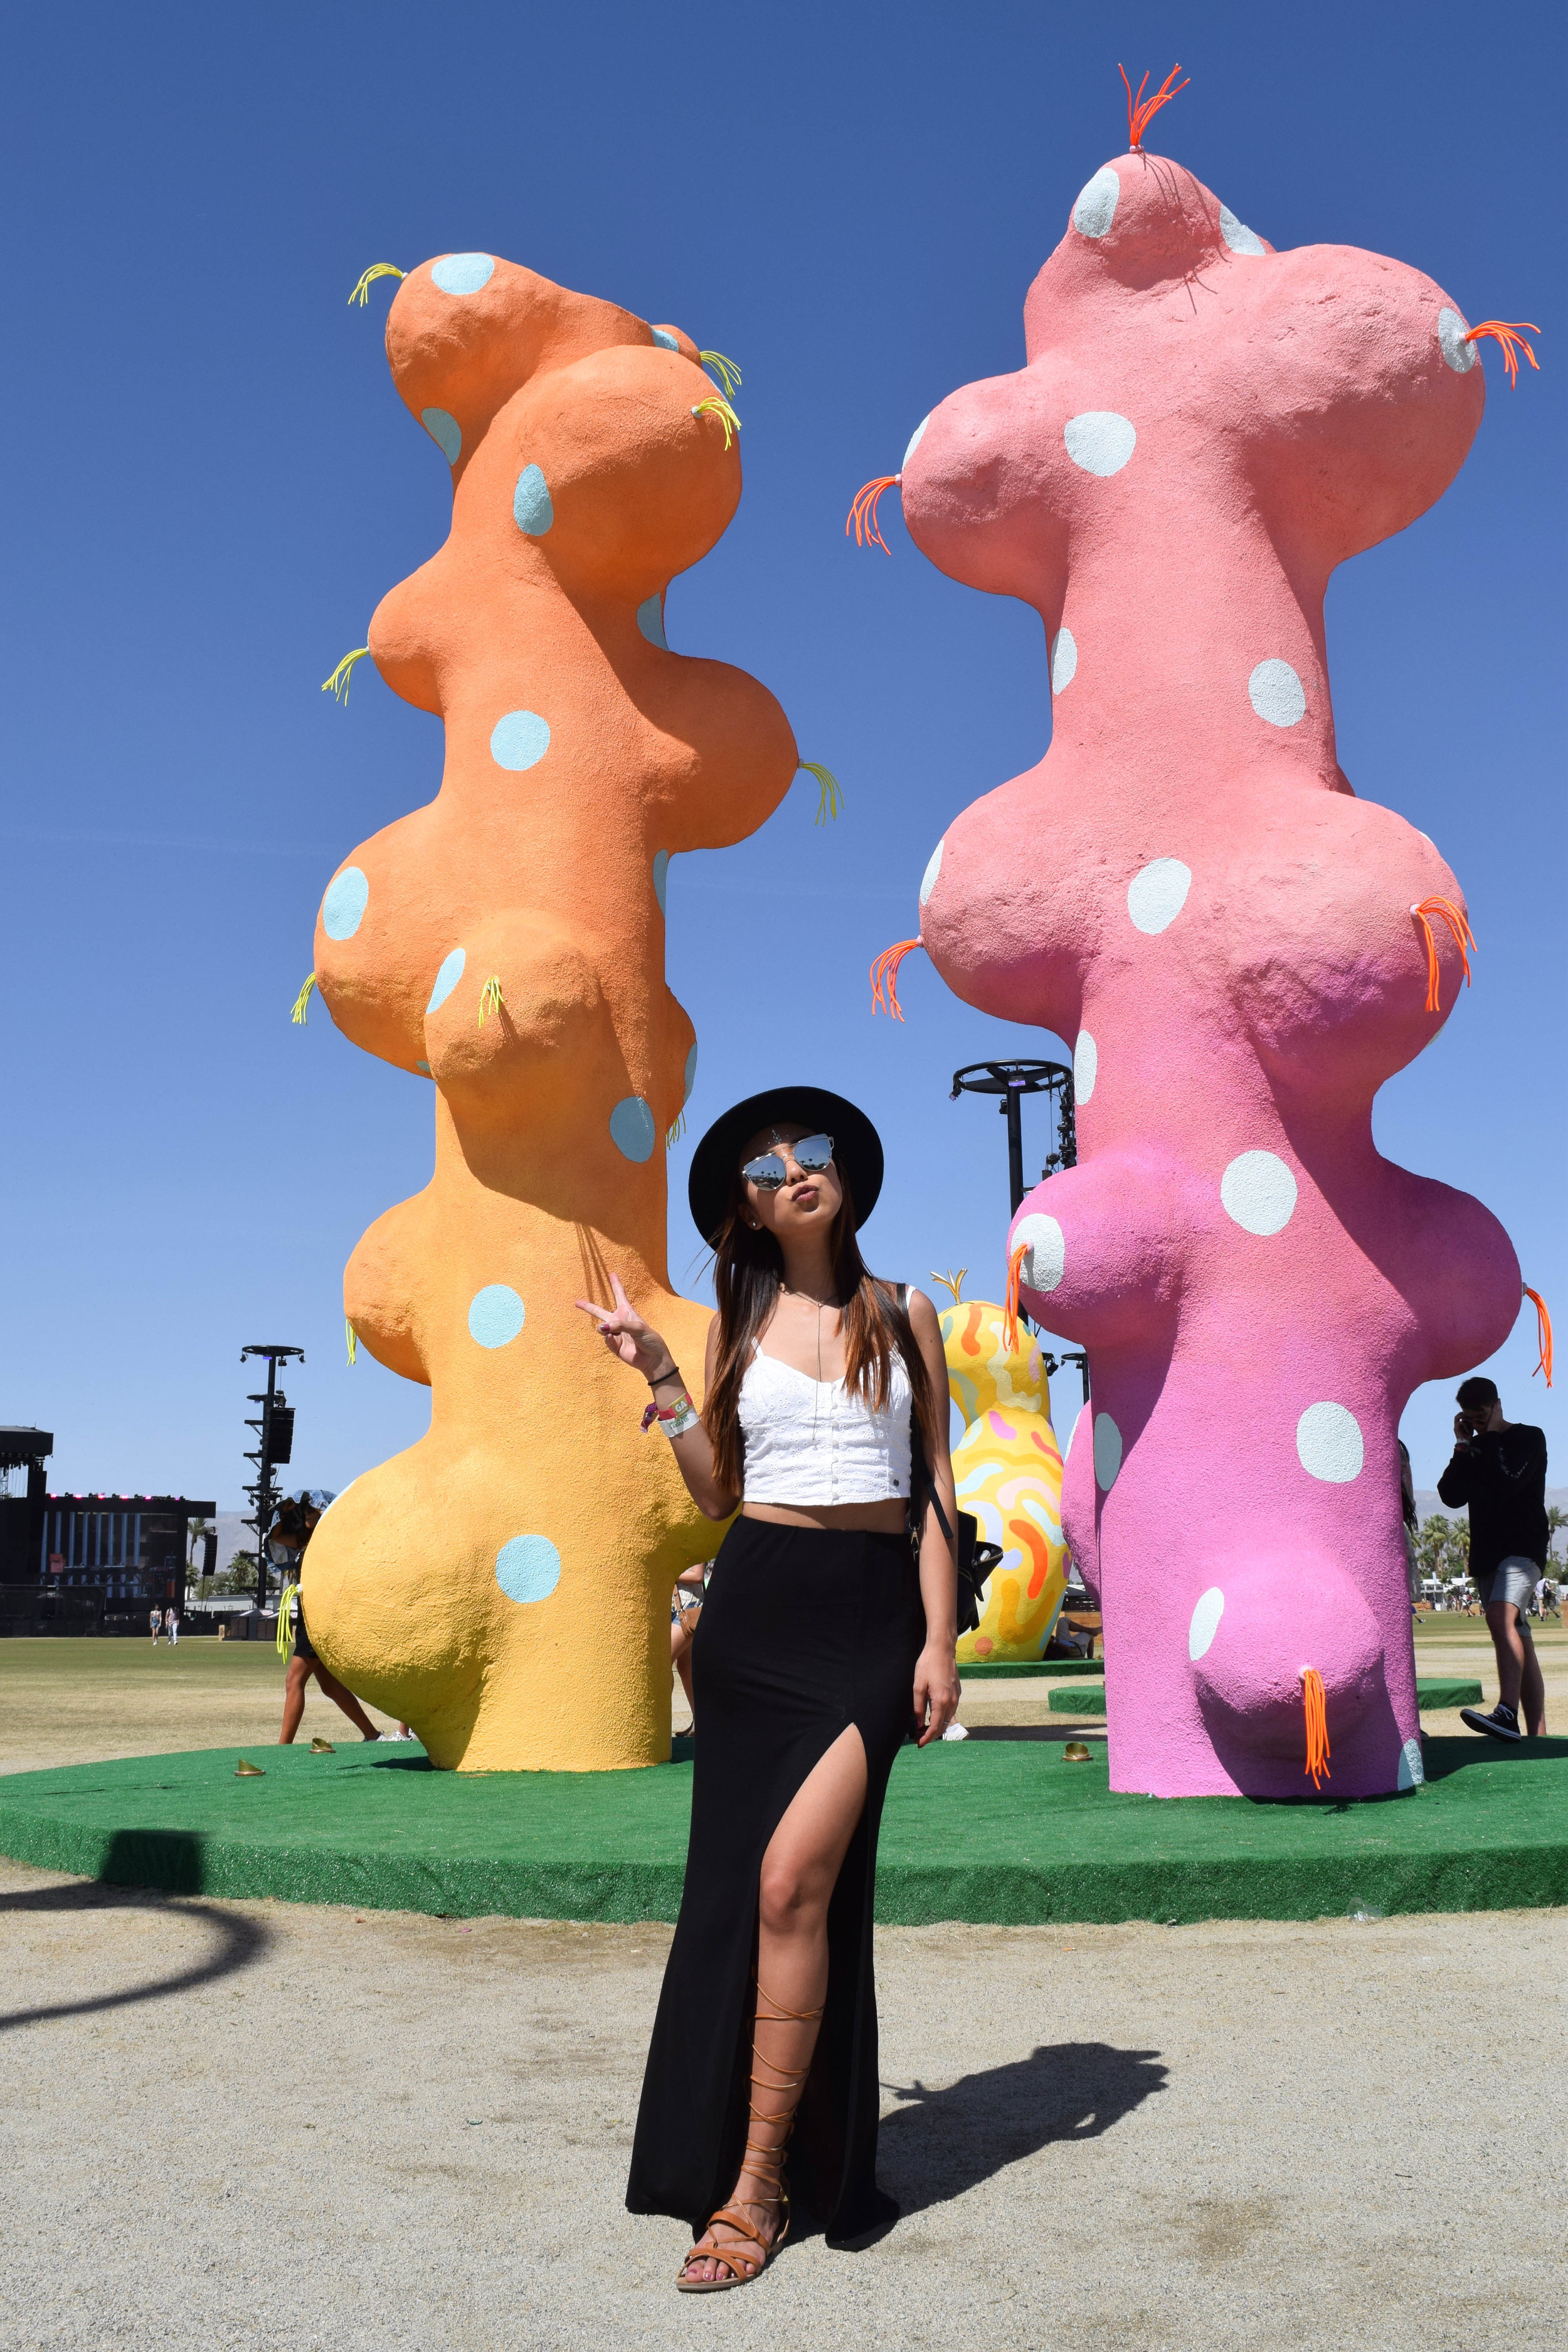 Lovin' the crazy art installations! Although, these look a bit phallic to me….😛